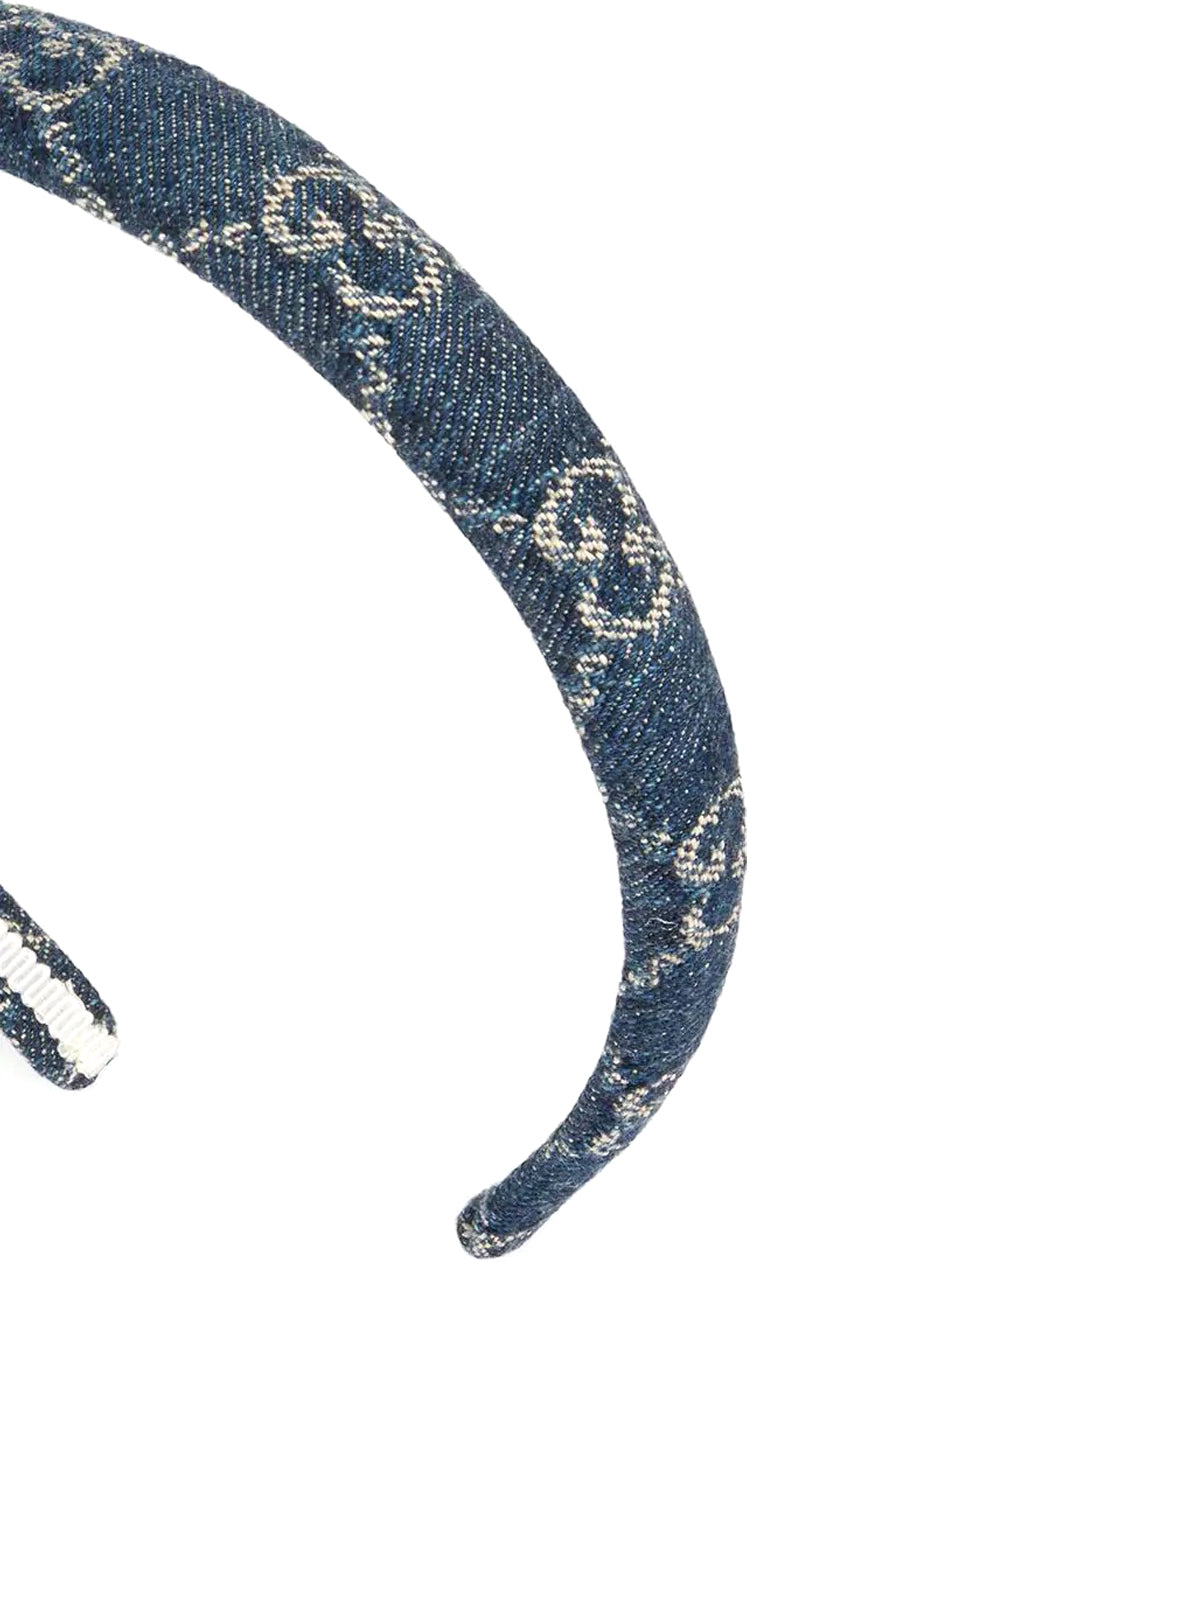 GG supreme denim hair band